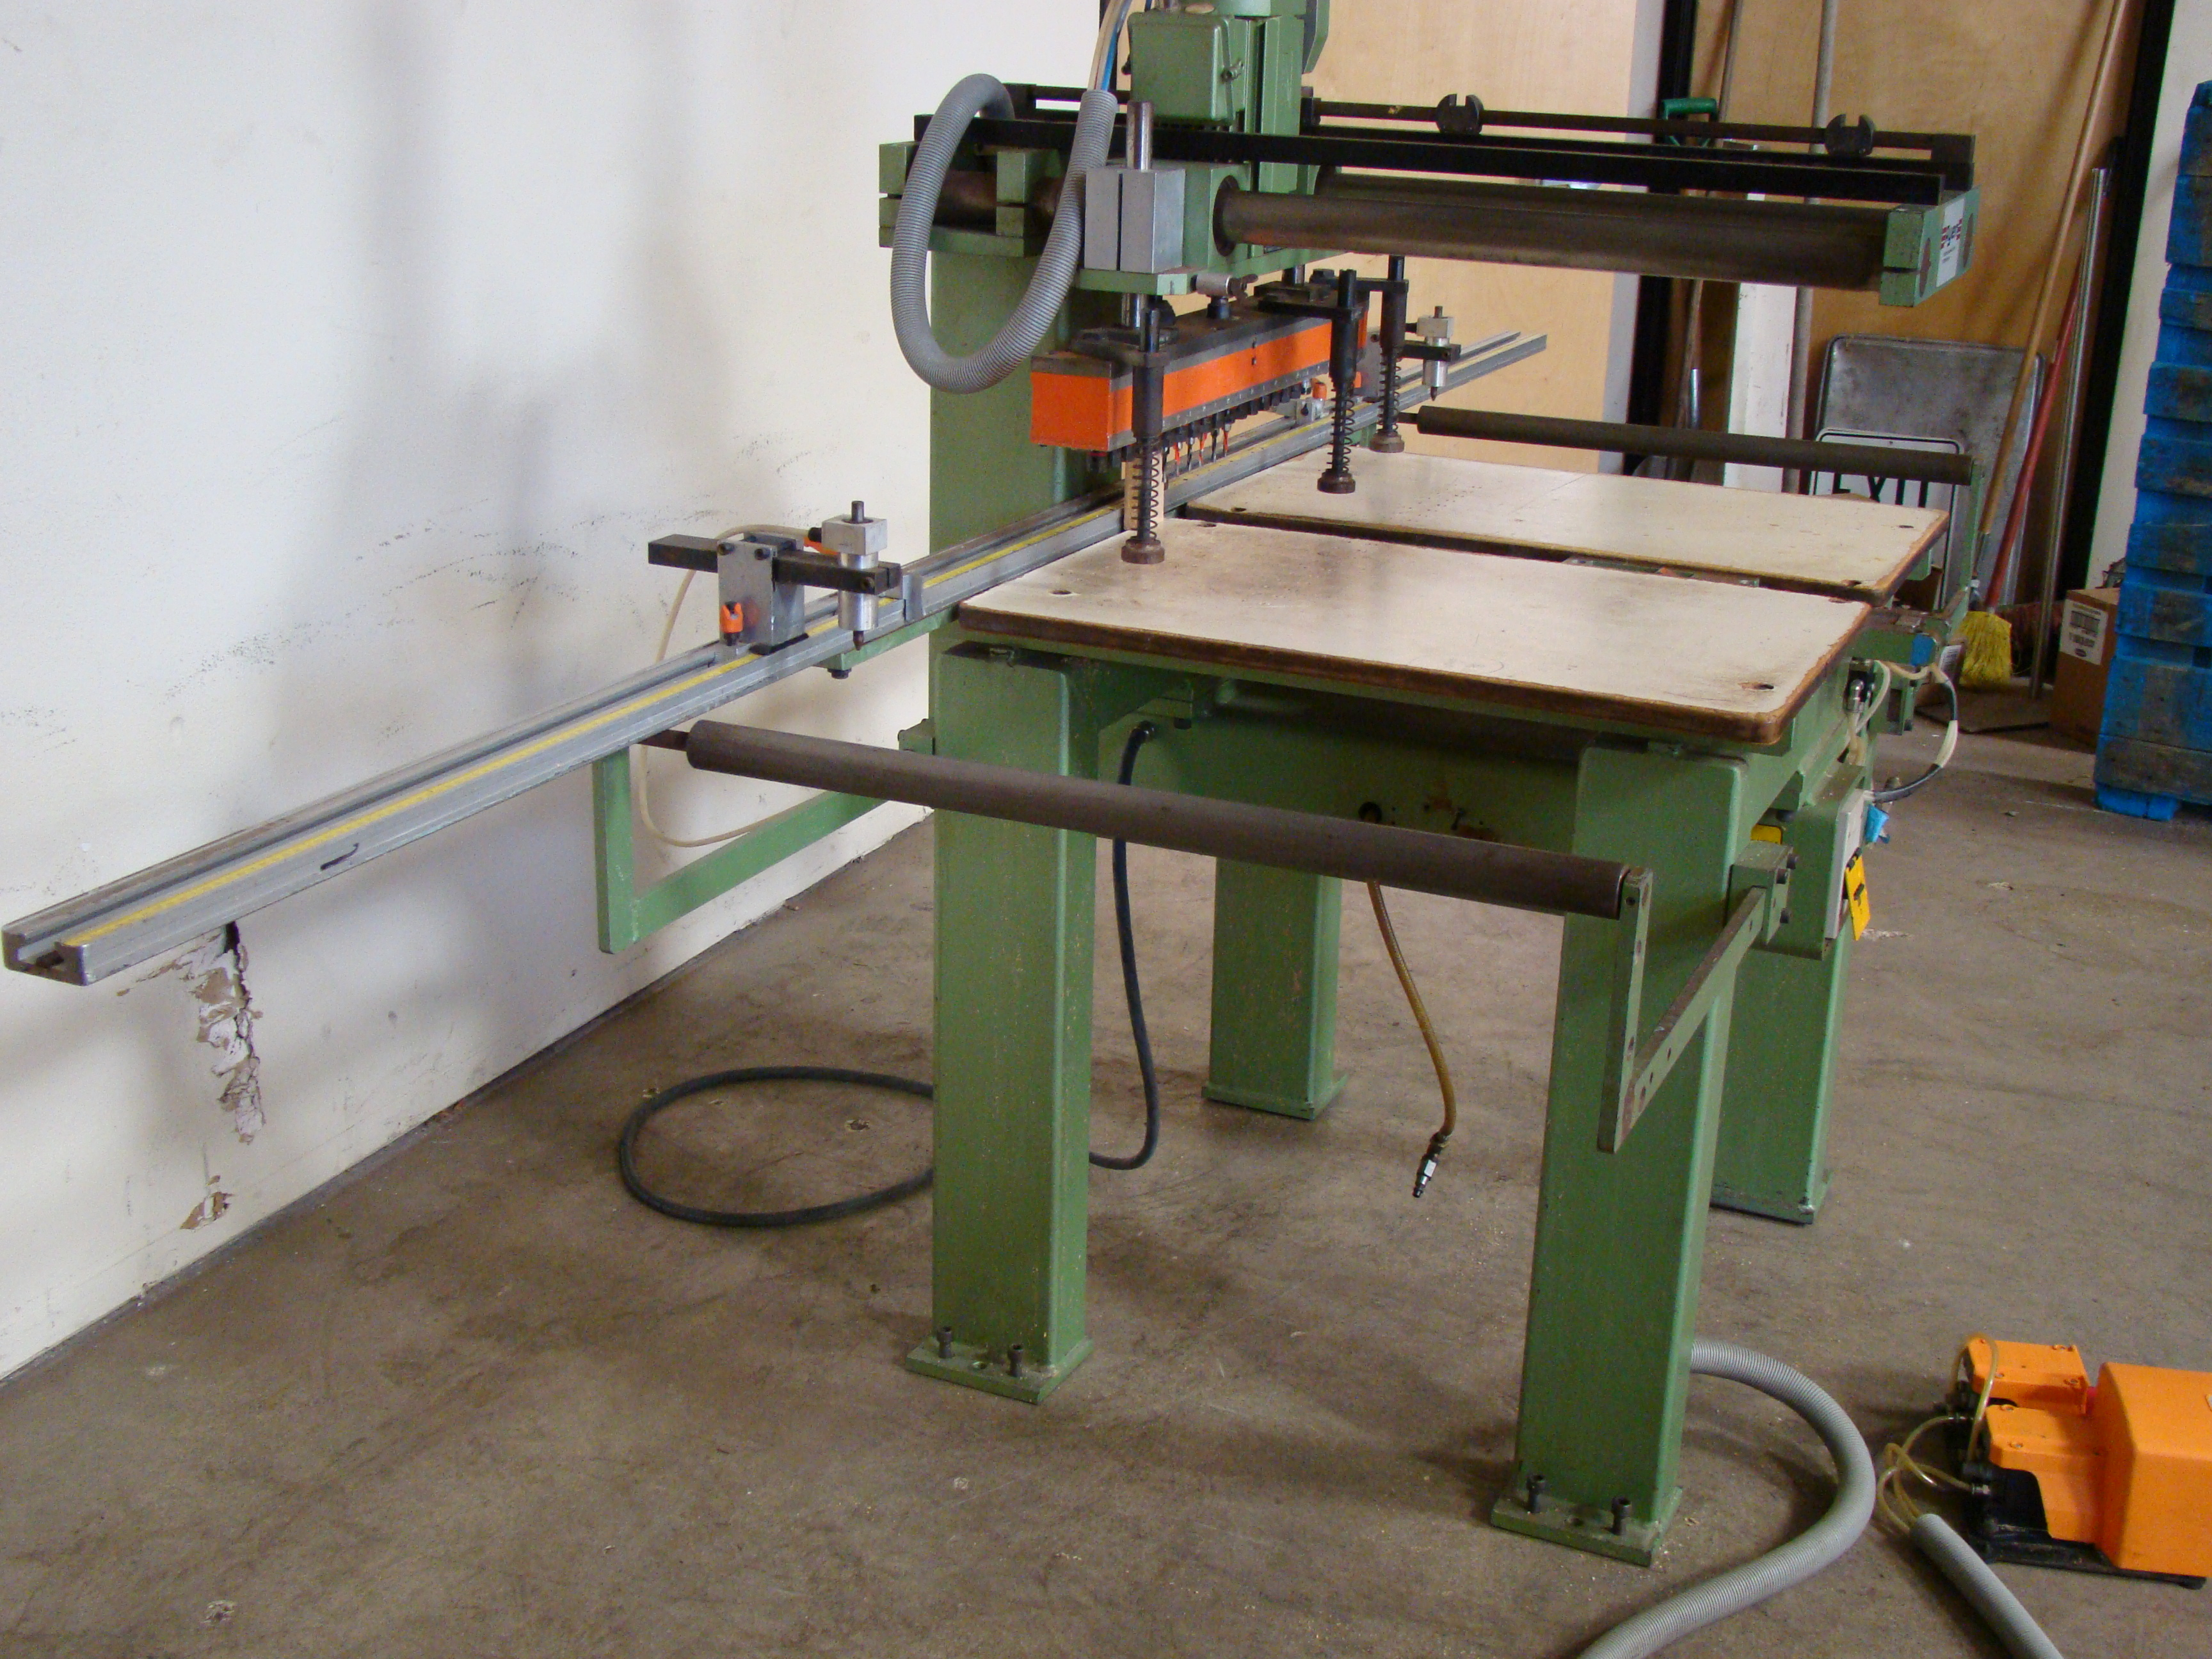 Ayen 21 Spindle Pneumatic Line Boring Machine with foot pedal, 230/460 Volt 3PH - Image 6 of 9